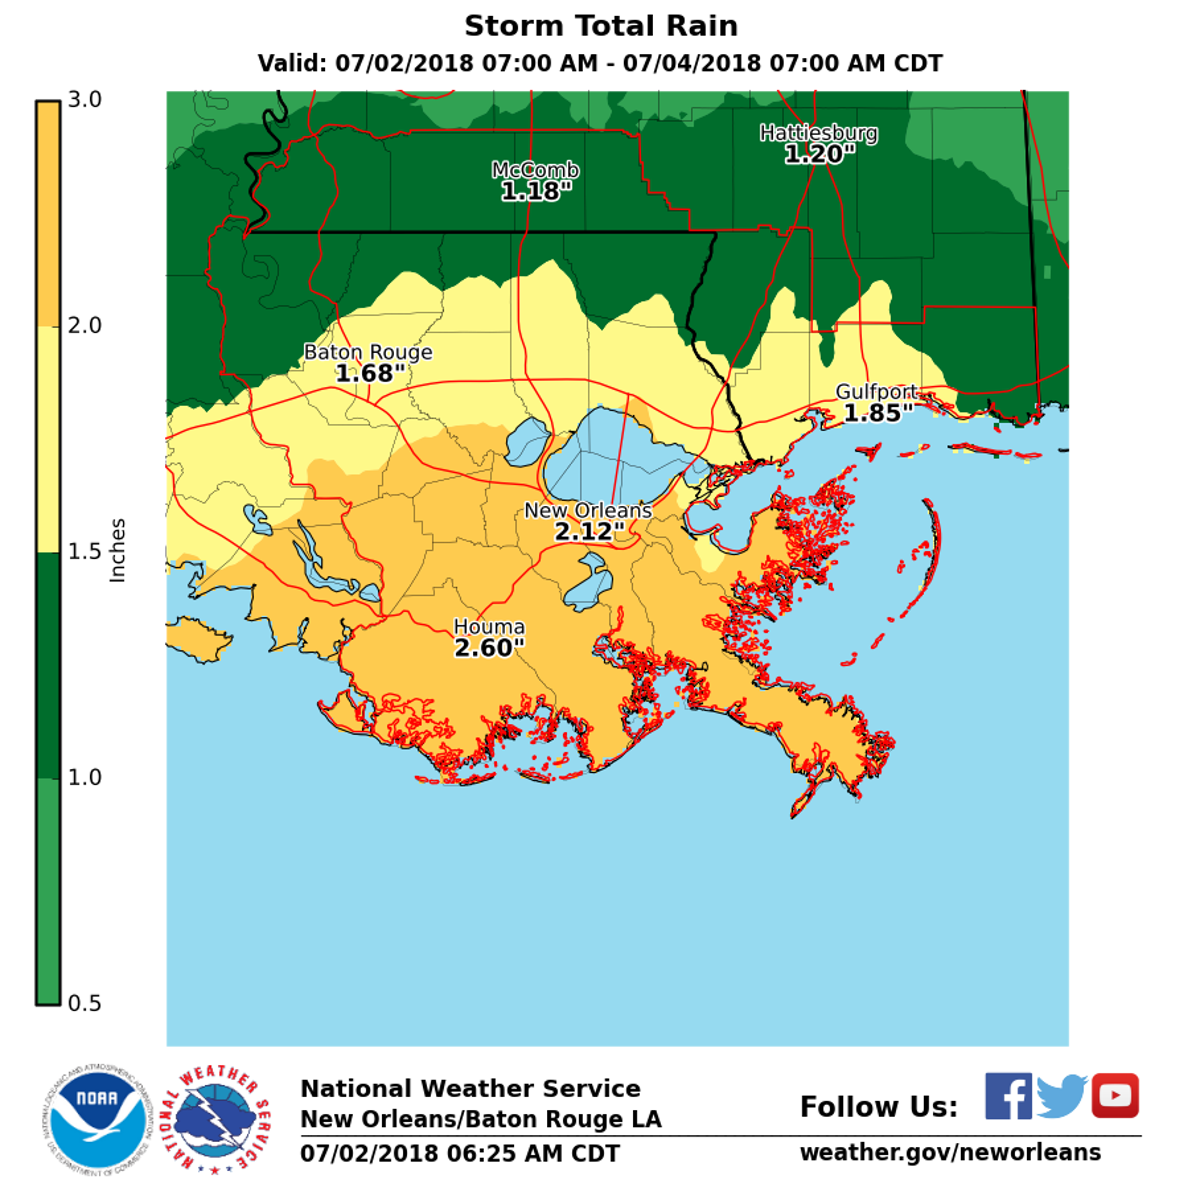 Active weather forecast for south Louisiana on Tuesday: Key details on clouds with key, surface weather map key, weather station model symbols key, map of usa with key, town map with key, cartogram with key, india map with key, time zone map with key, crime map with key, world map with key, tennessee map with key, map of united states with distance key, plate tectonics map with key, ecosystem map with key, map with map key, simple map with key, weather maps for california climate, ireland map with key, florida map with physical key, ancient greece map with key,